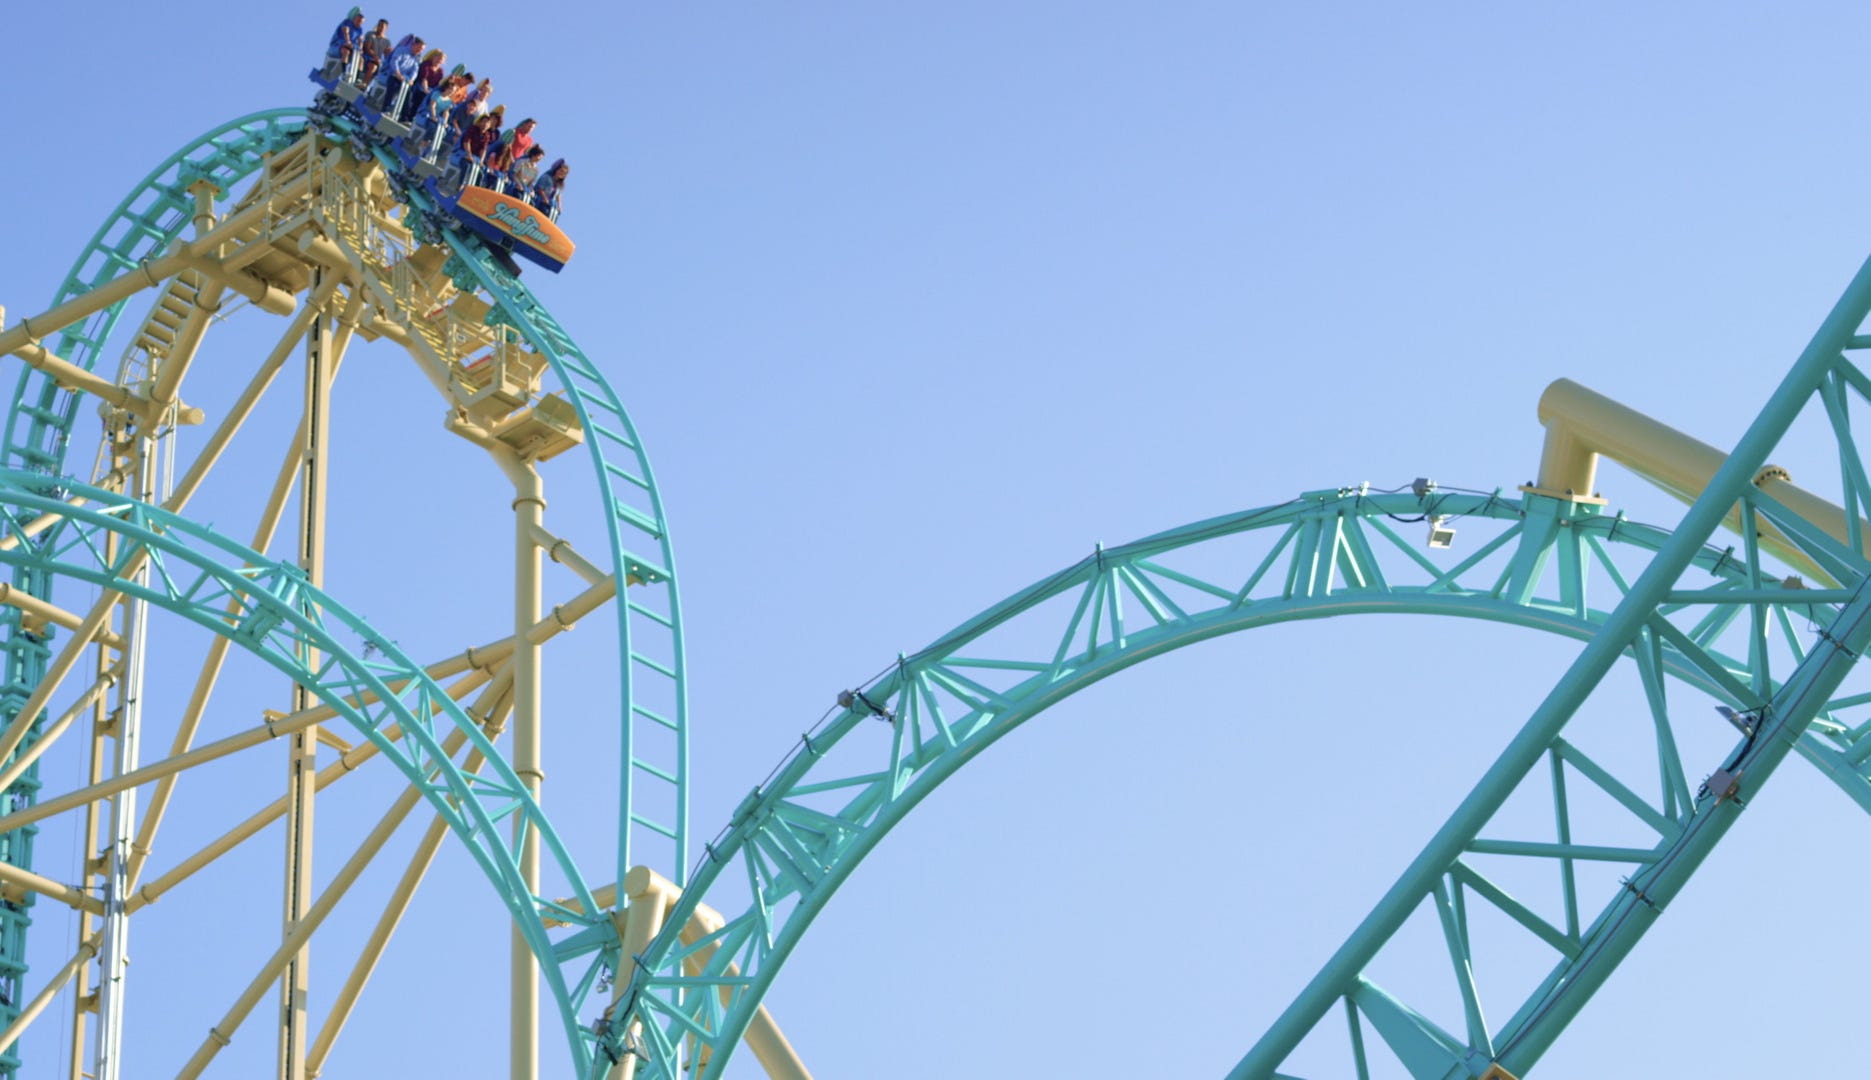 HangTime coaster review: Knott's Berry Farm leaves you hanging   USA Today